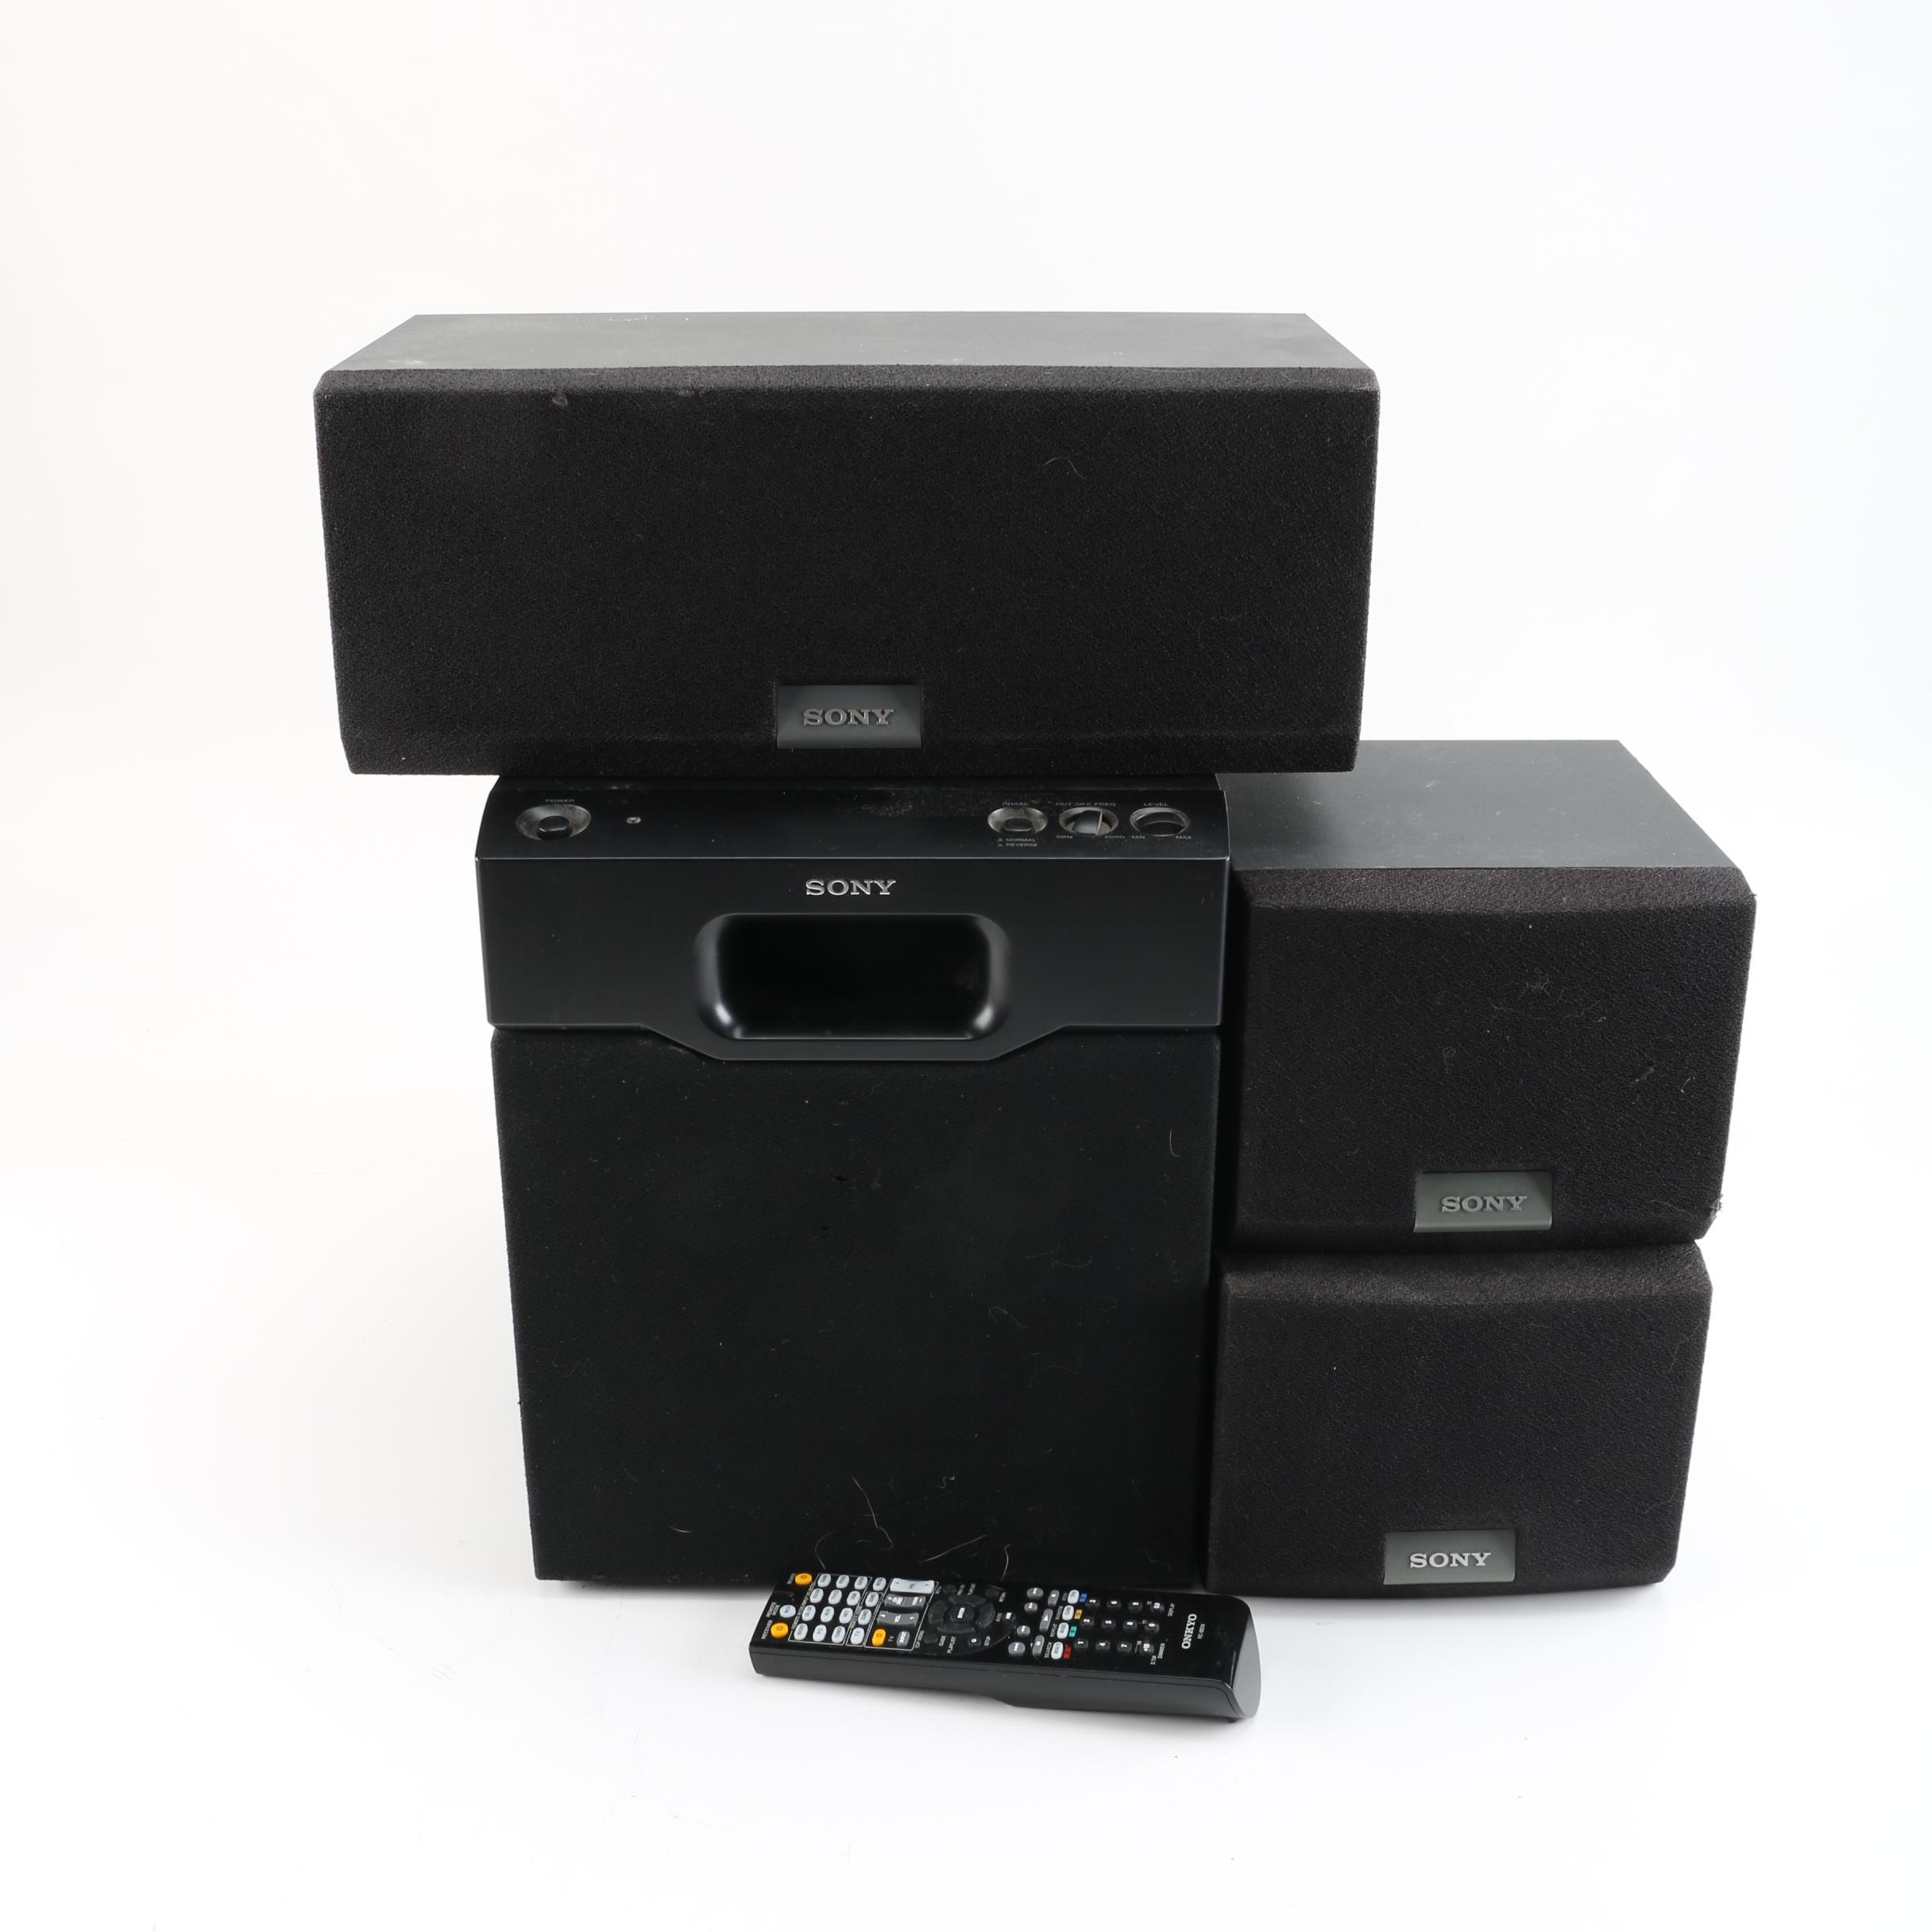 Set of Sony Surround Sound Speakers